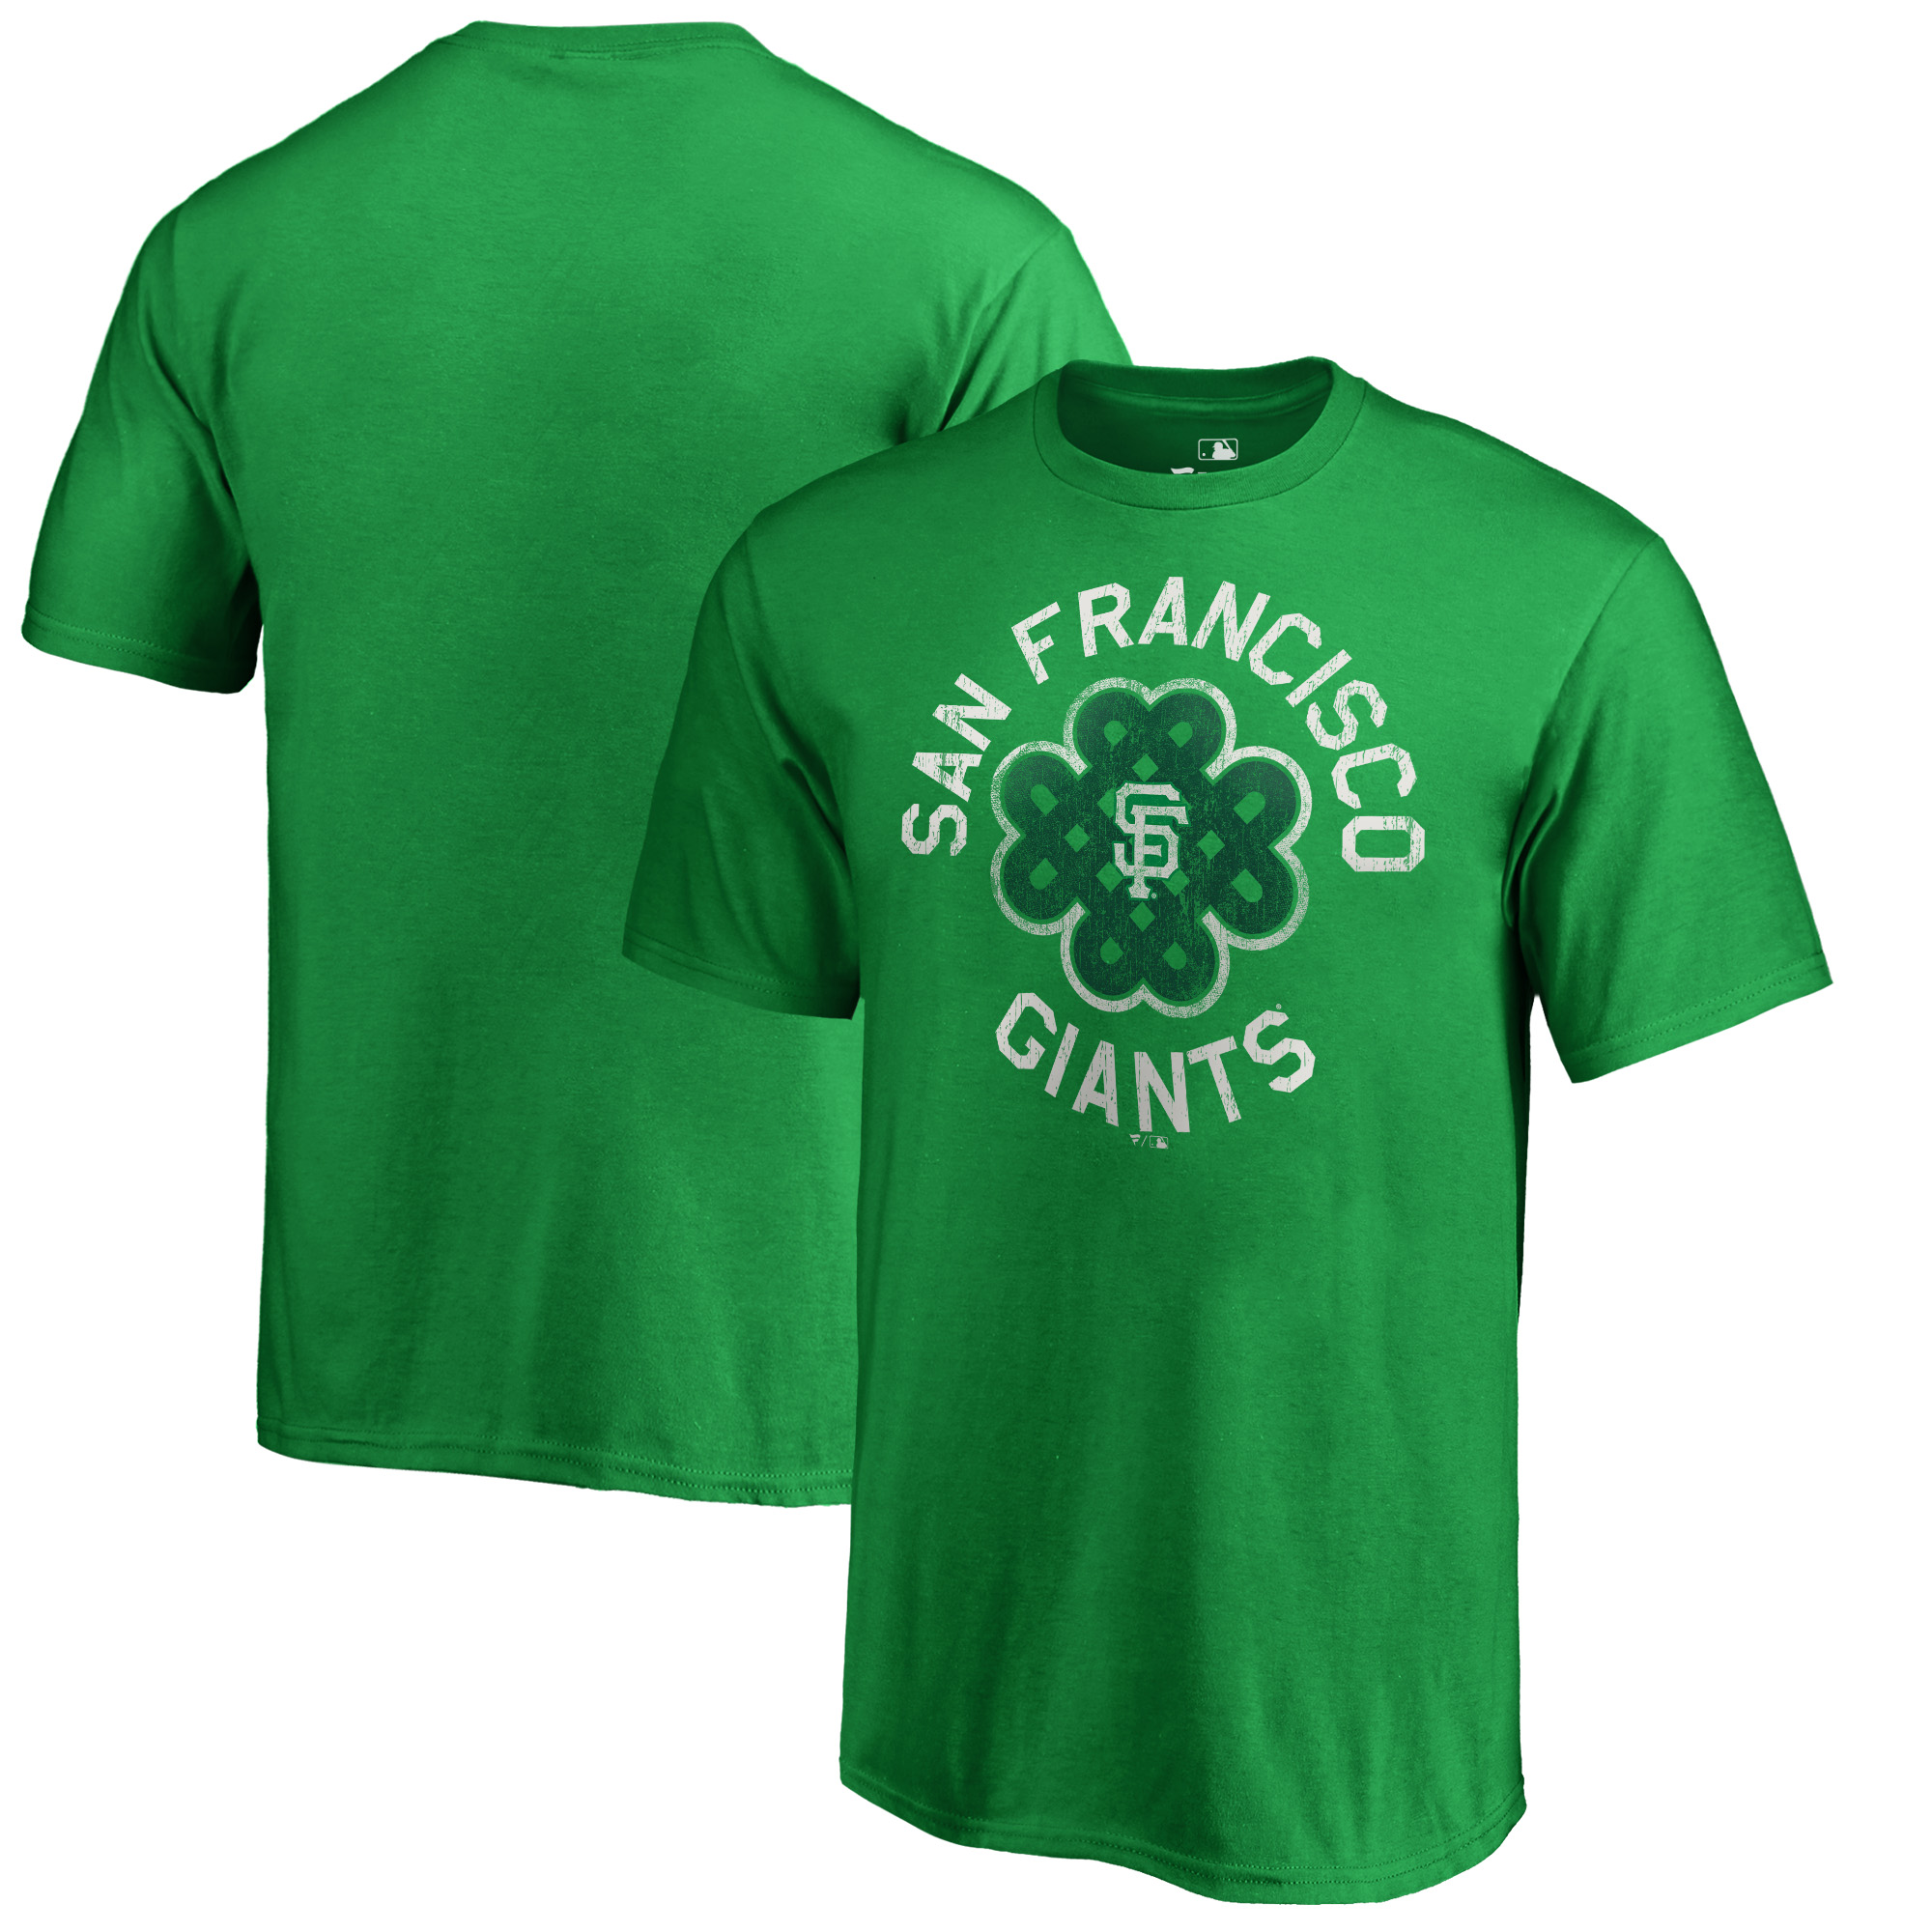 San Francisco Giants Fanatics Branded Youth St. Patrick's Day Luck Tradition T-Shirt - Kelly Green